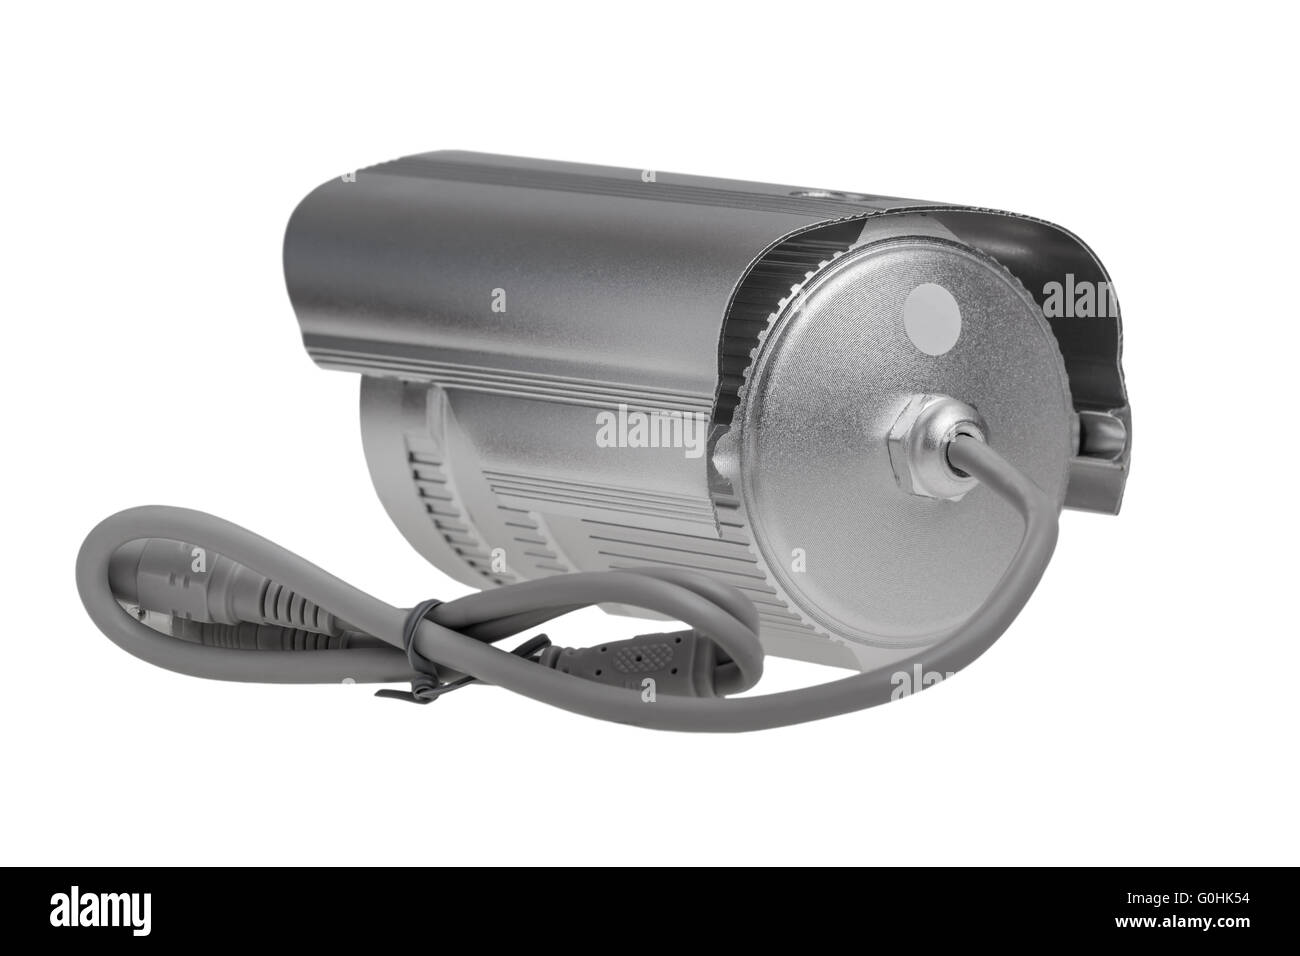 External security surveillance camera with night vision LED backlight isolated on white background - Stock Image